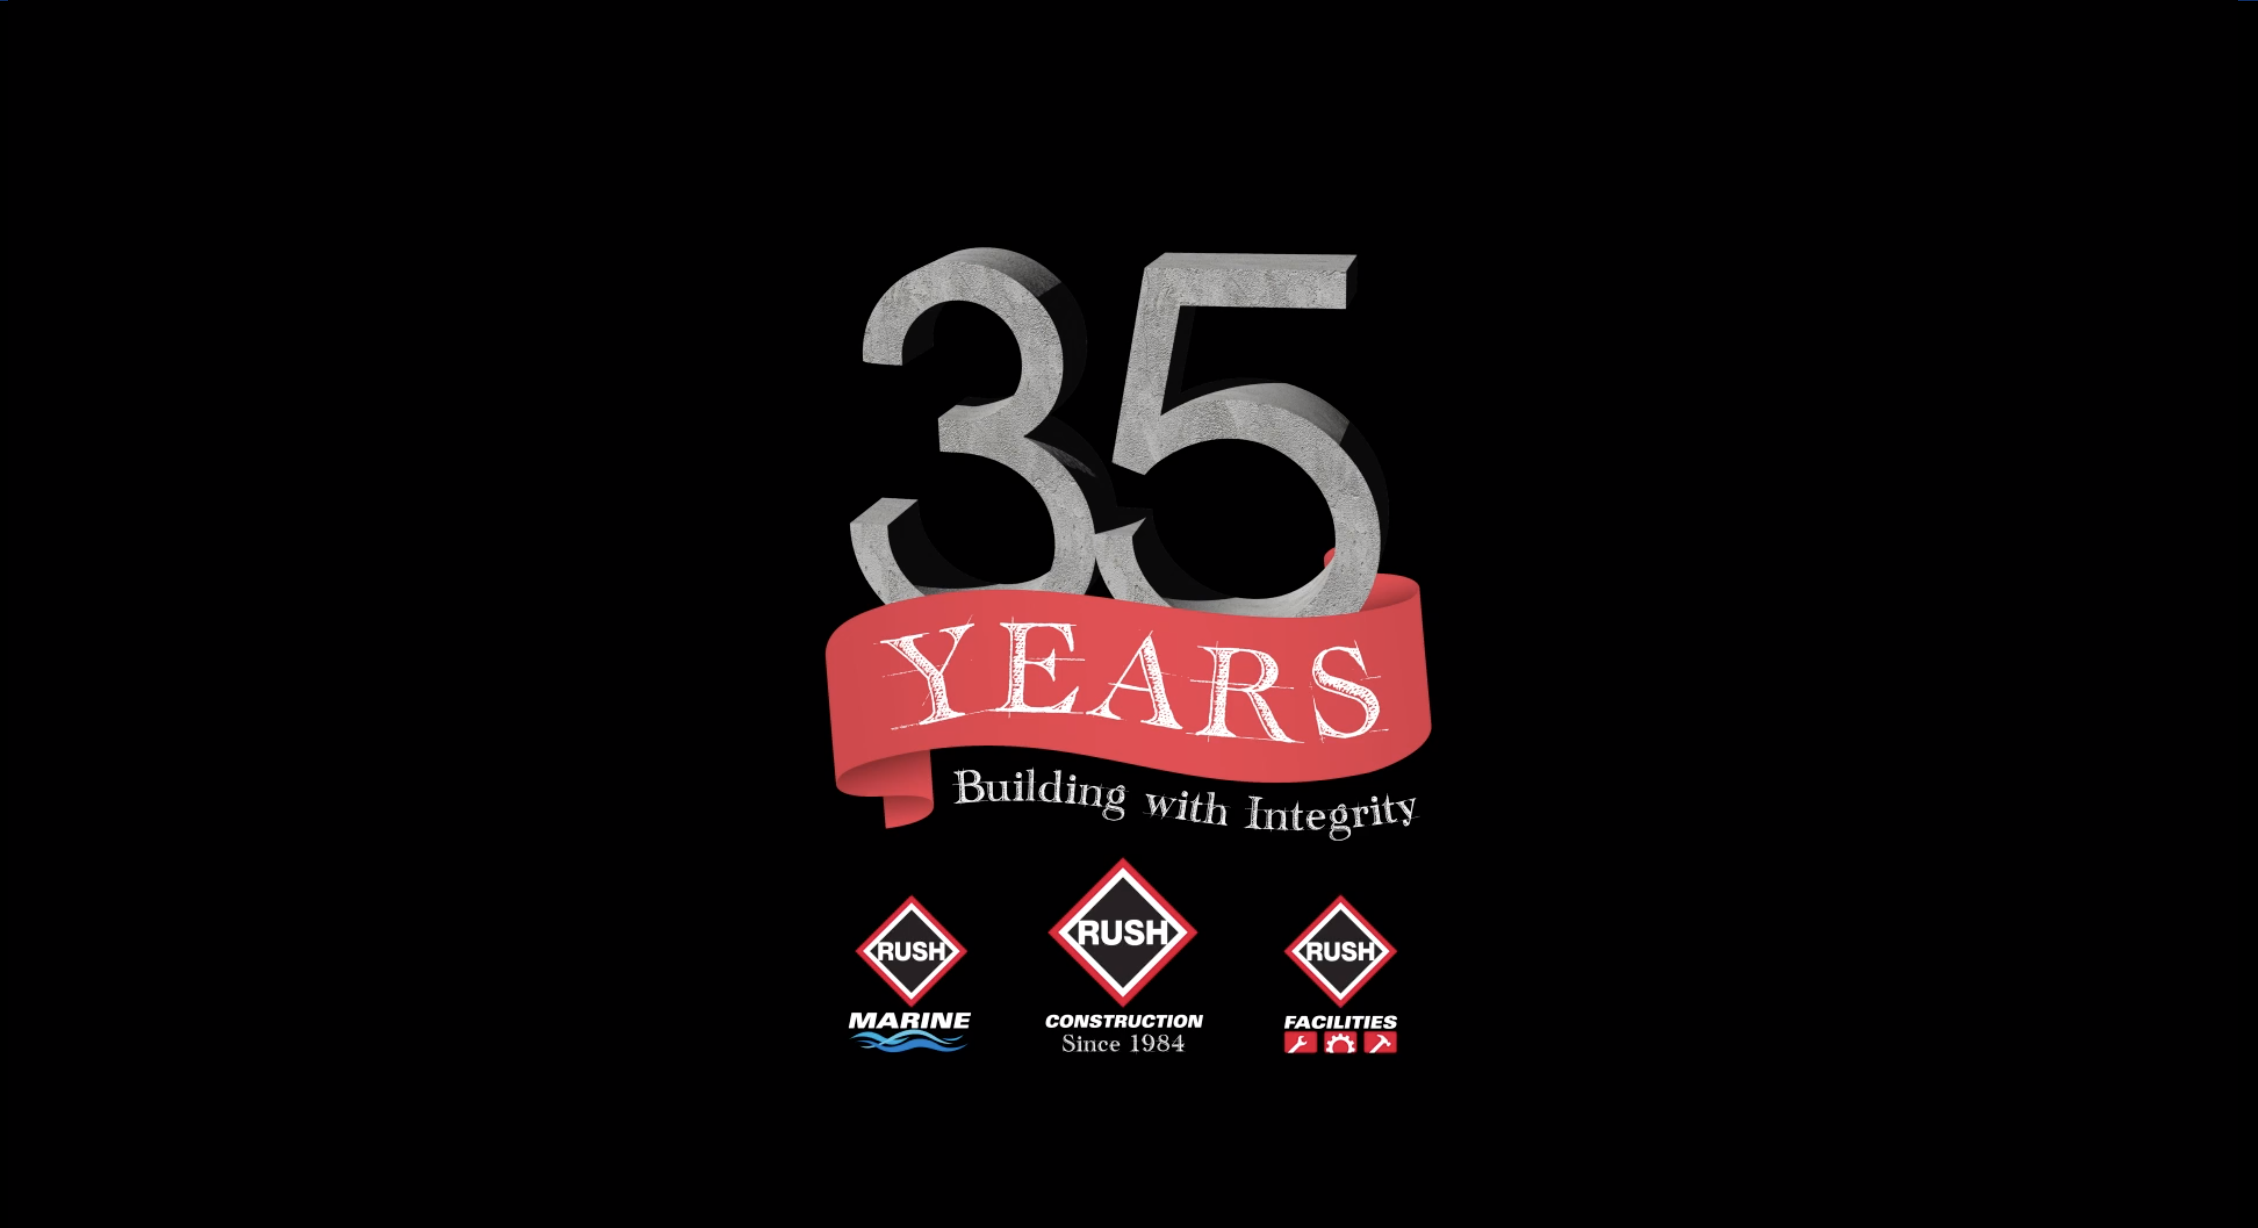 RUSH Construction Celebrates 35 Years in Business